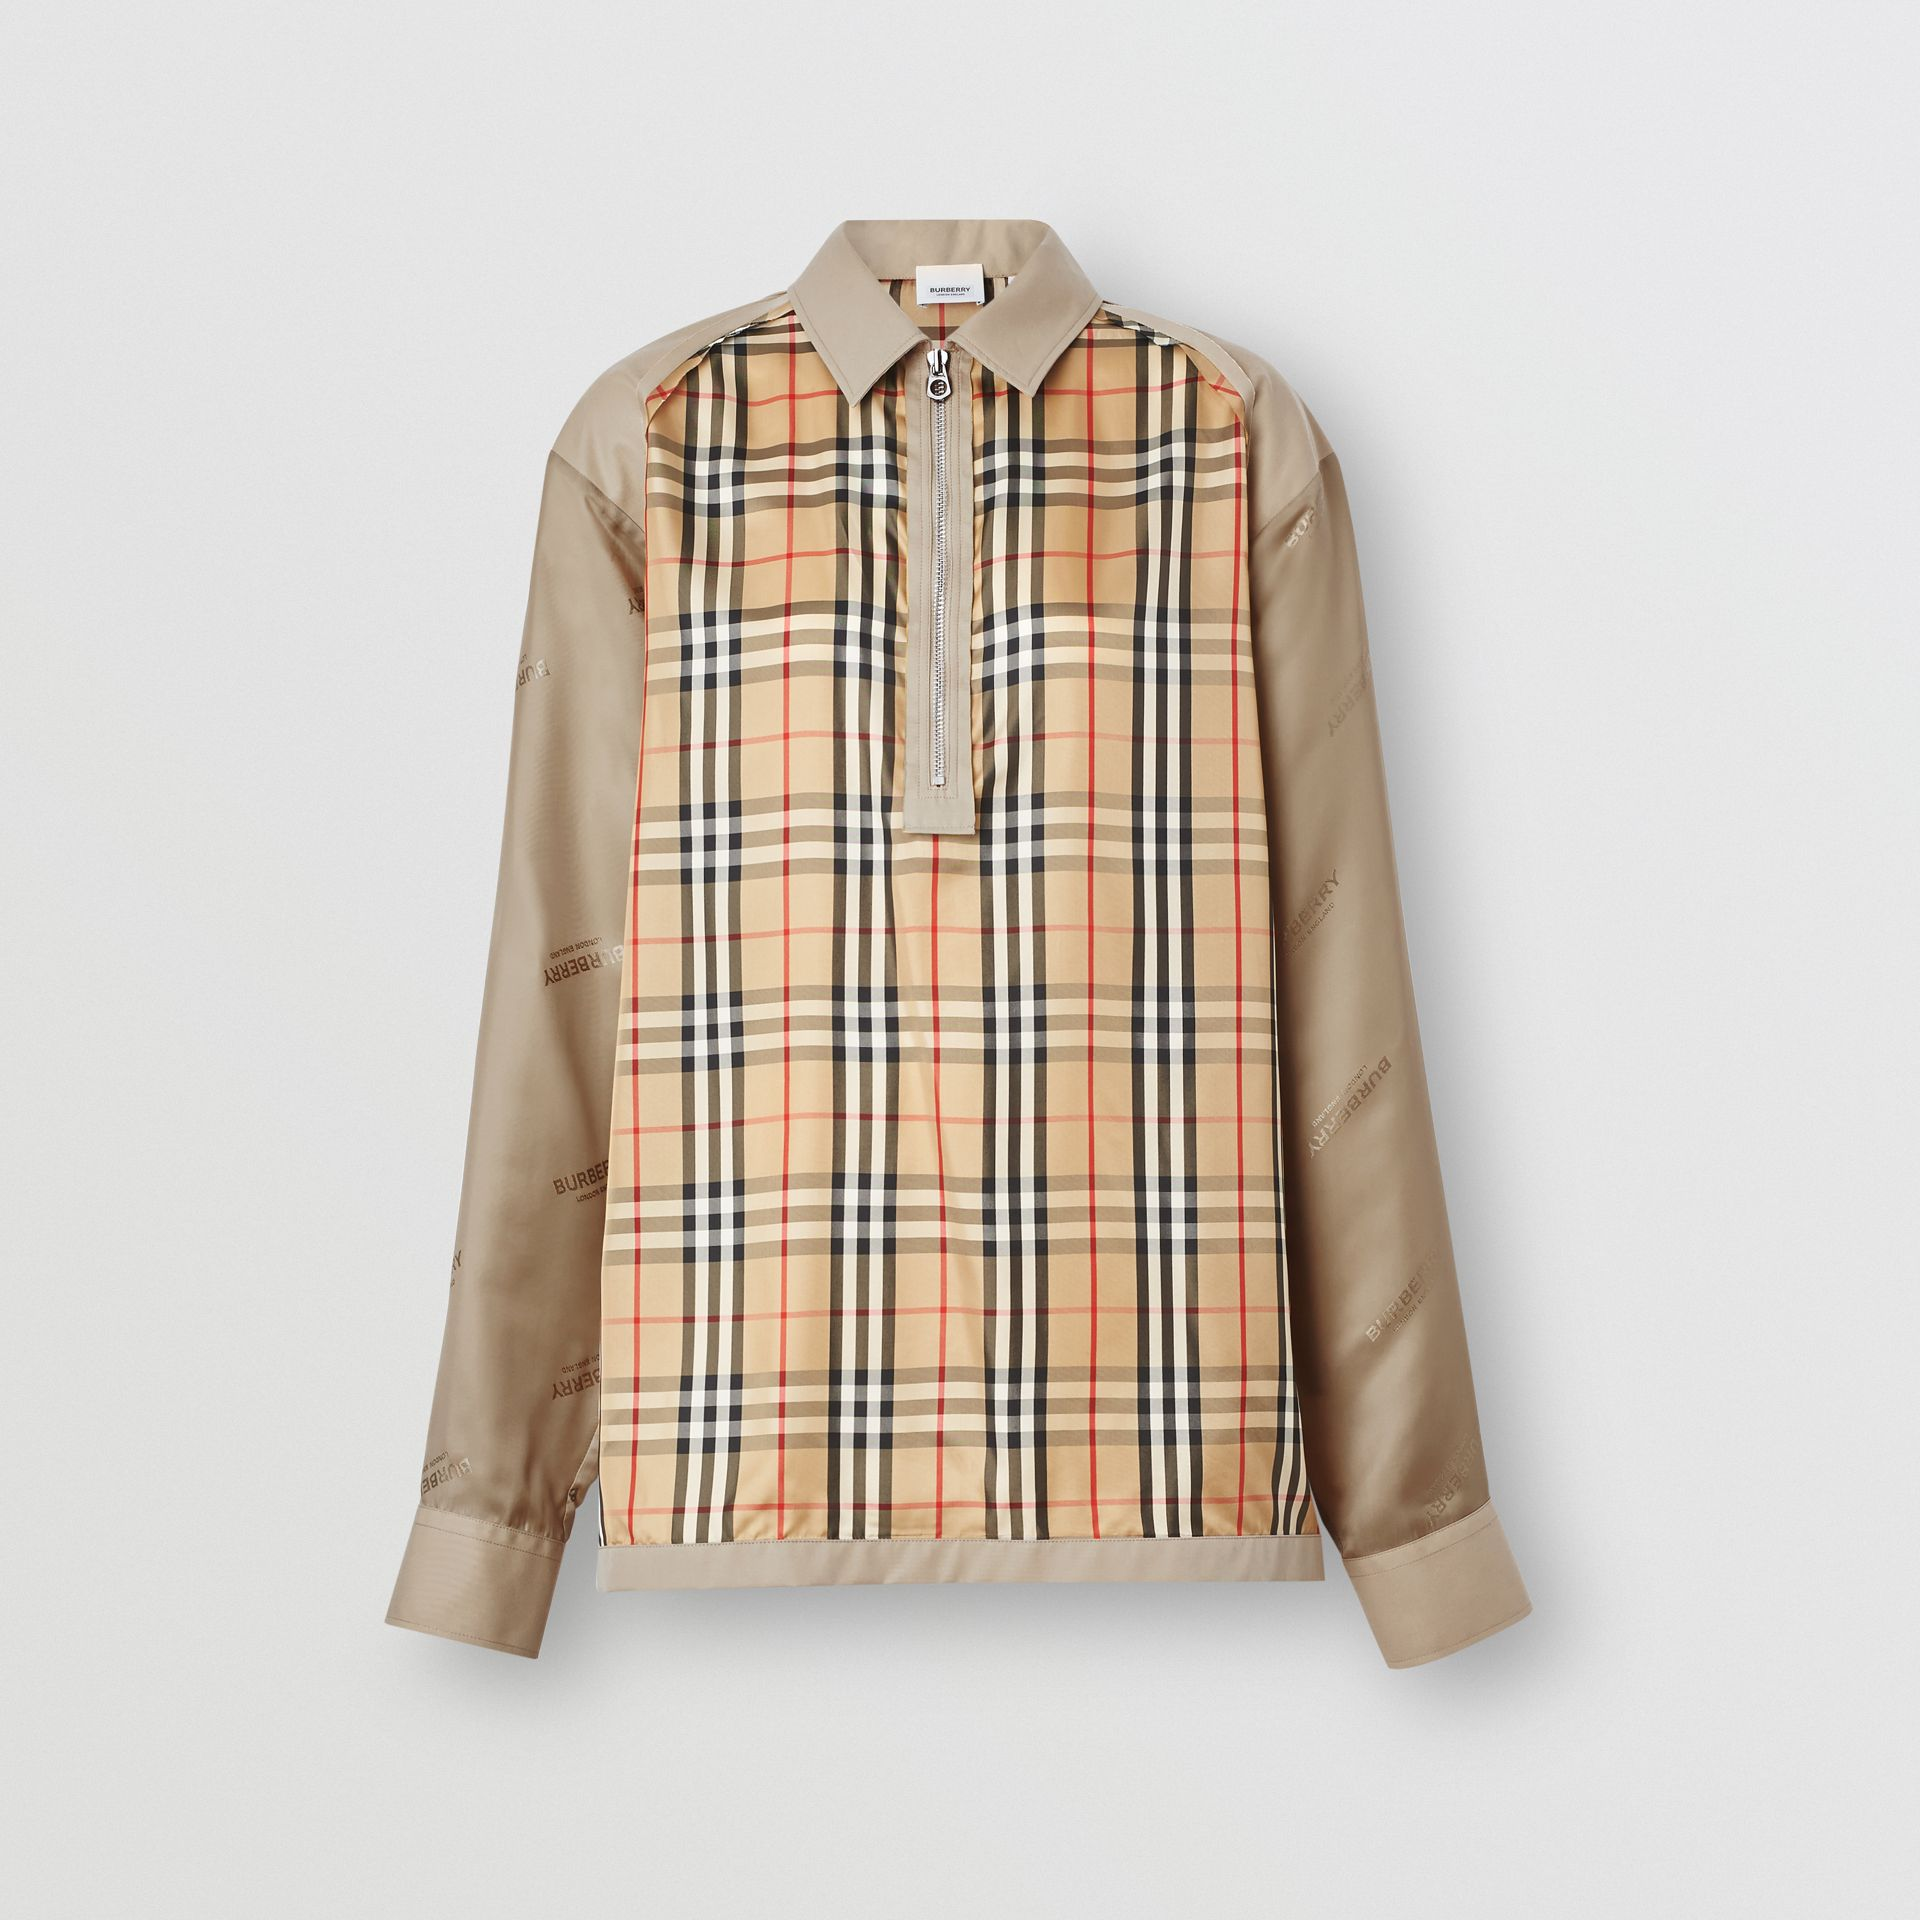 Seam Detail Vintage Check Shirt in Archive Beige - Men   Burberry United States - gallery image 3